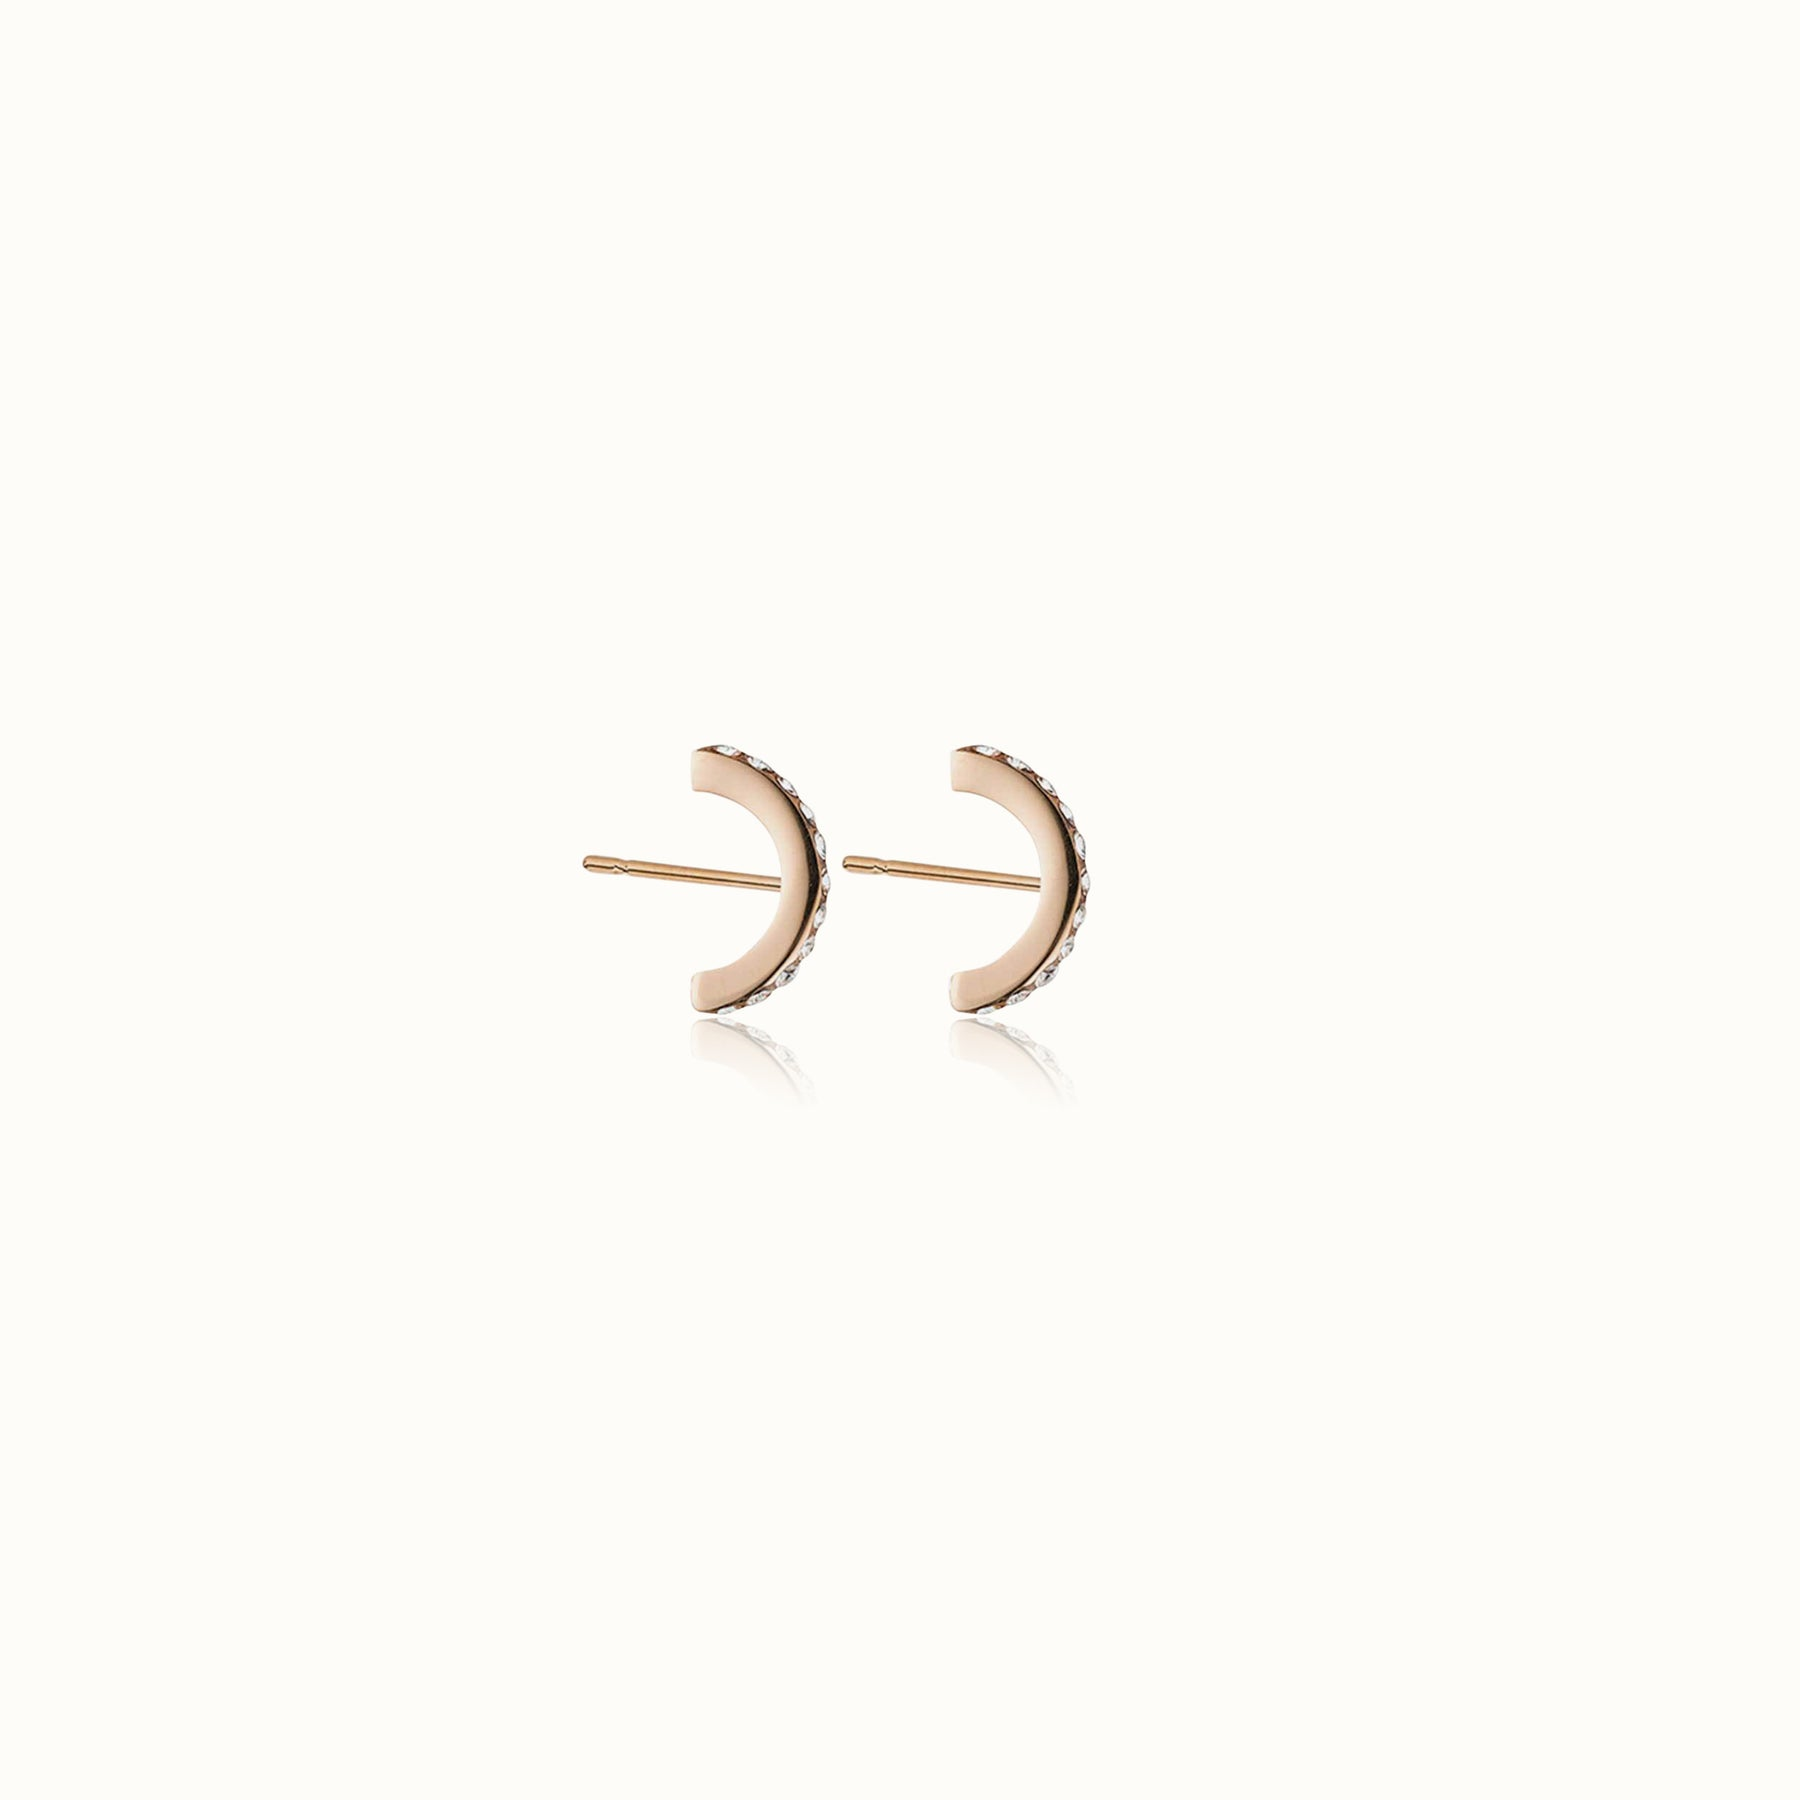 Luna Pave Stud Earrings